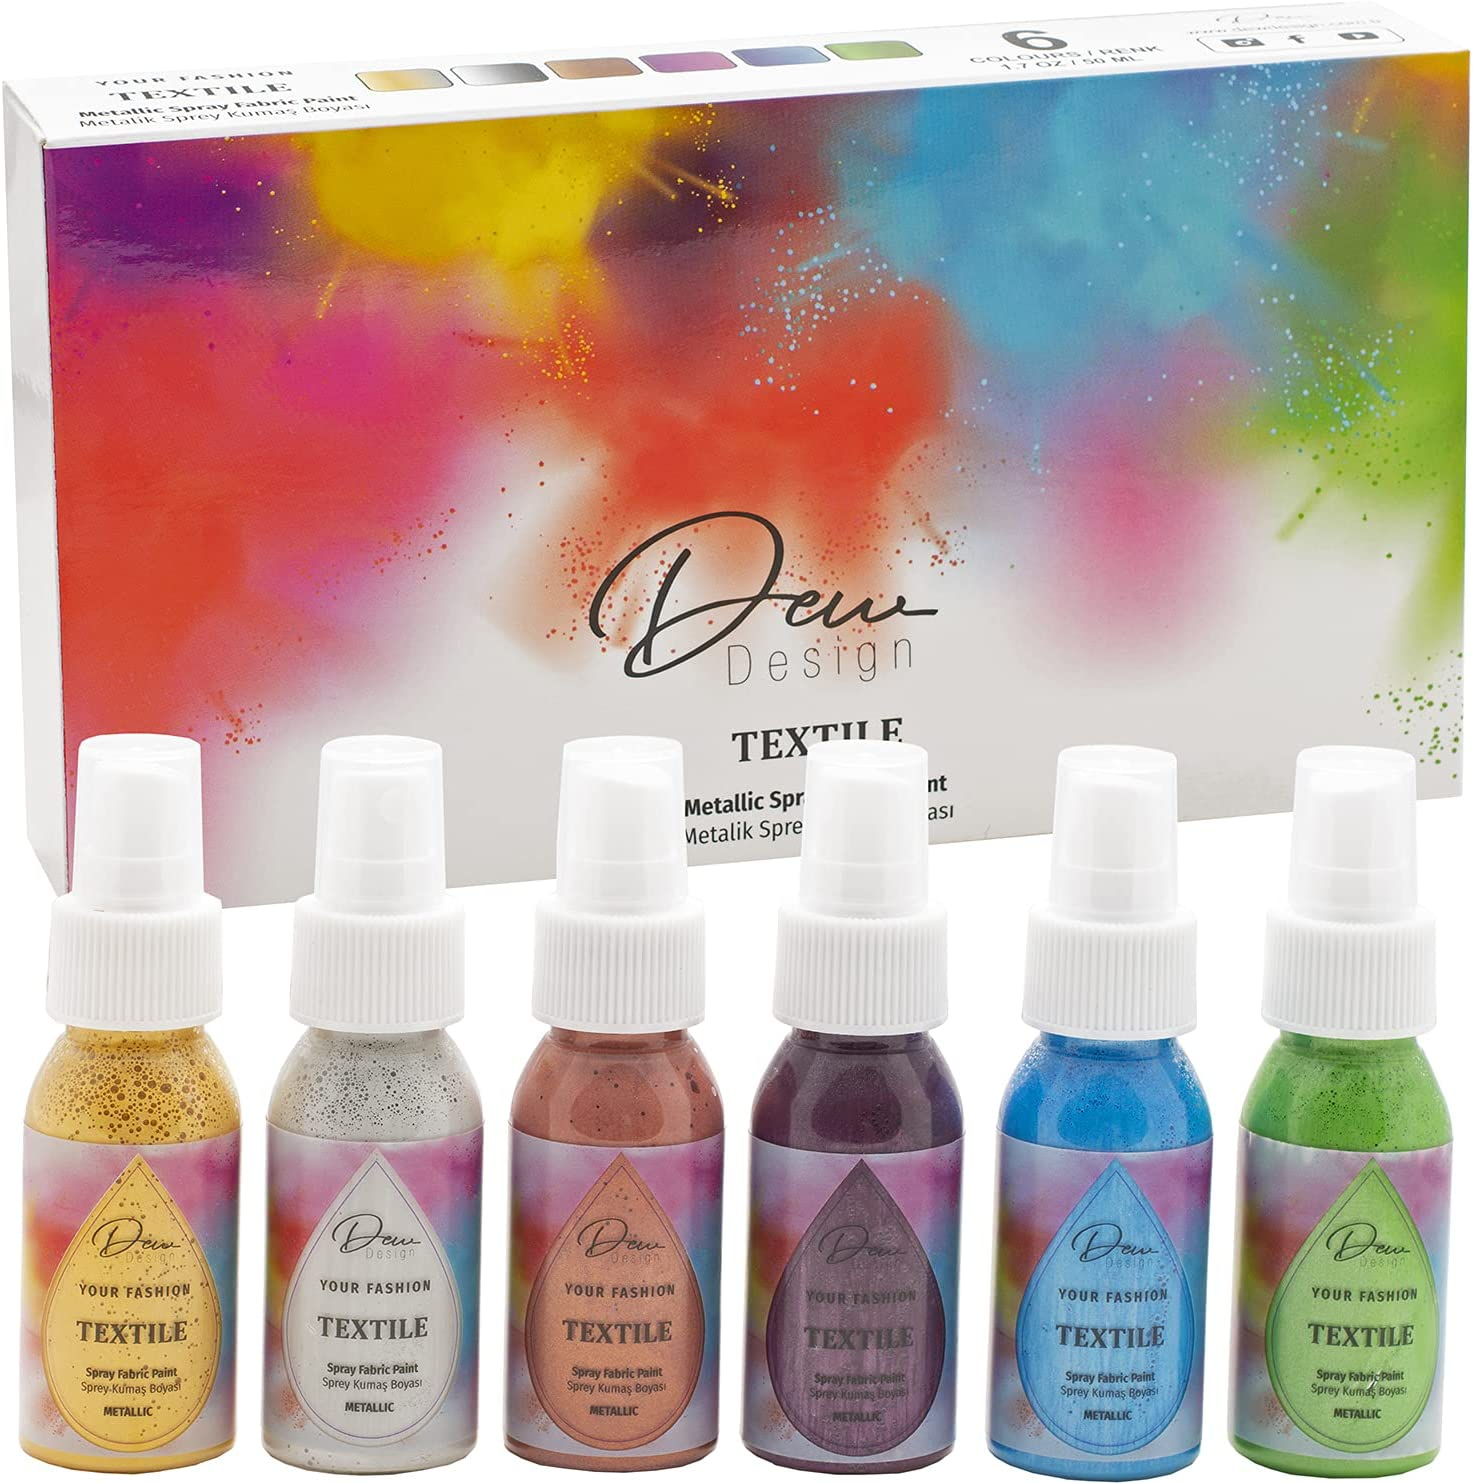 Metallic Spray free Paints for Clothes Make Fashio Your Tie Own Dye Direct store